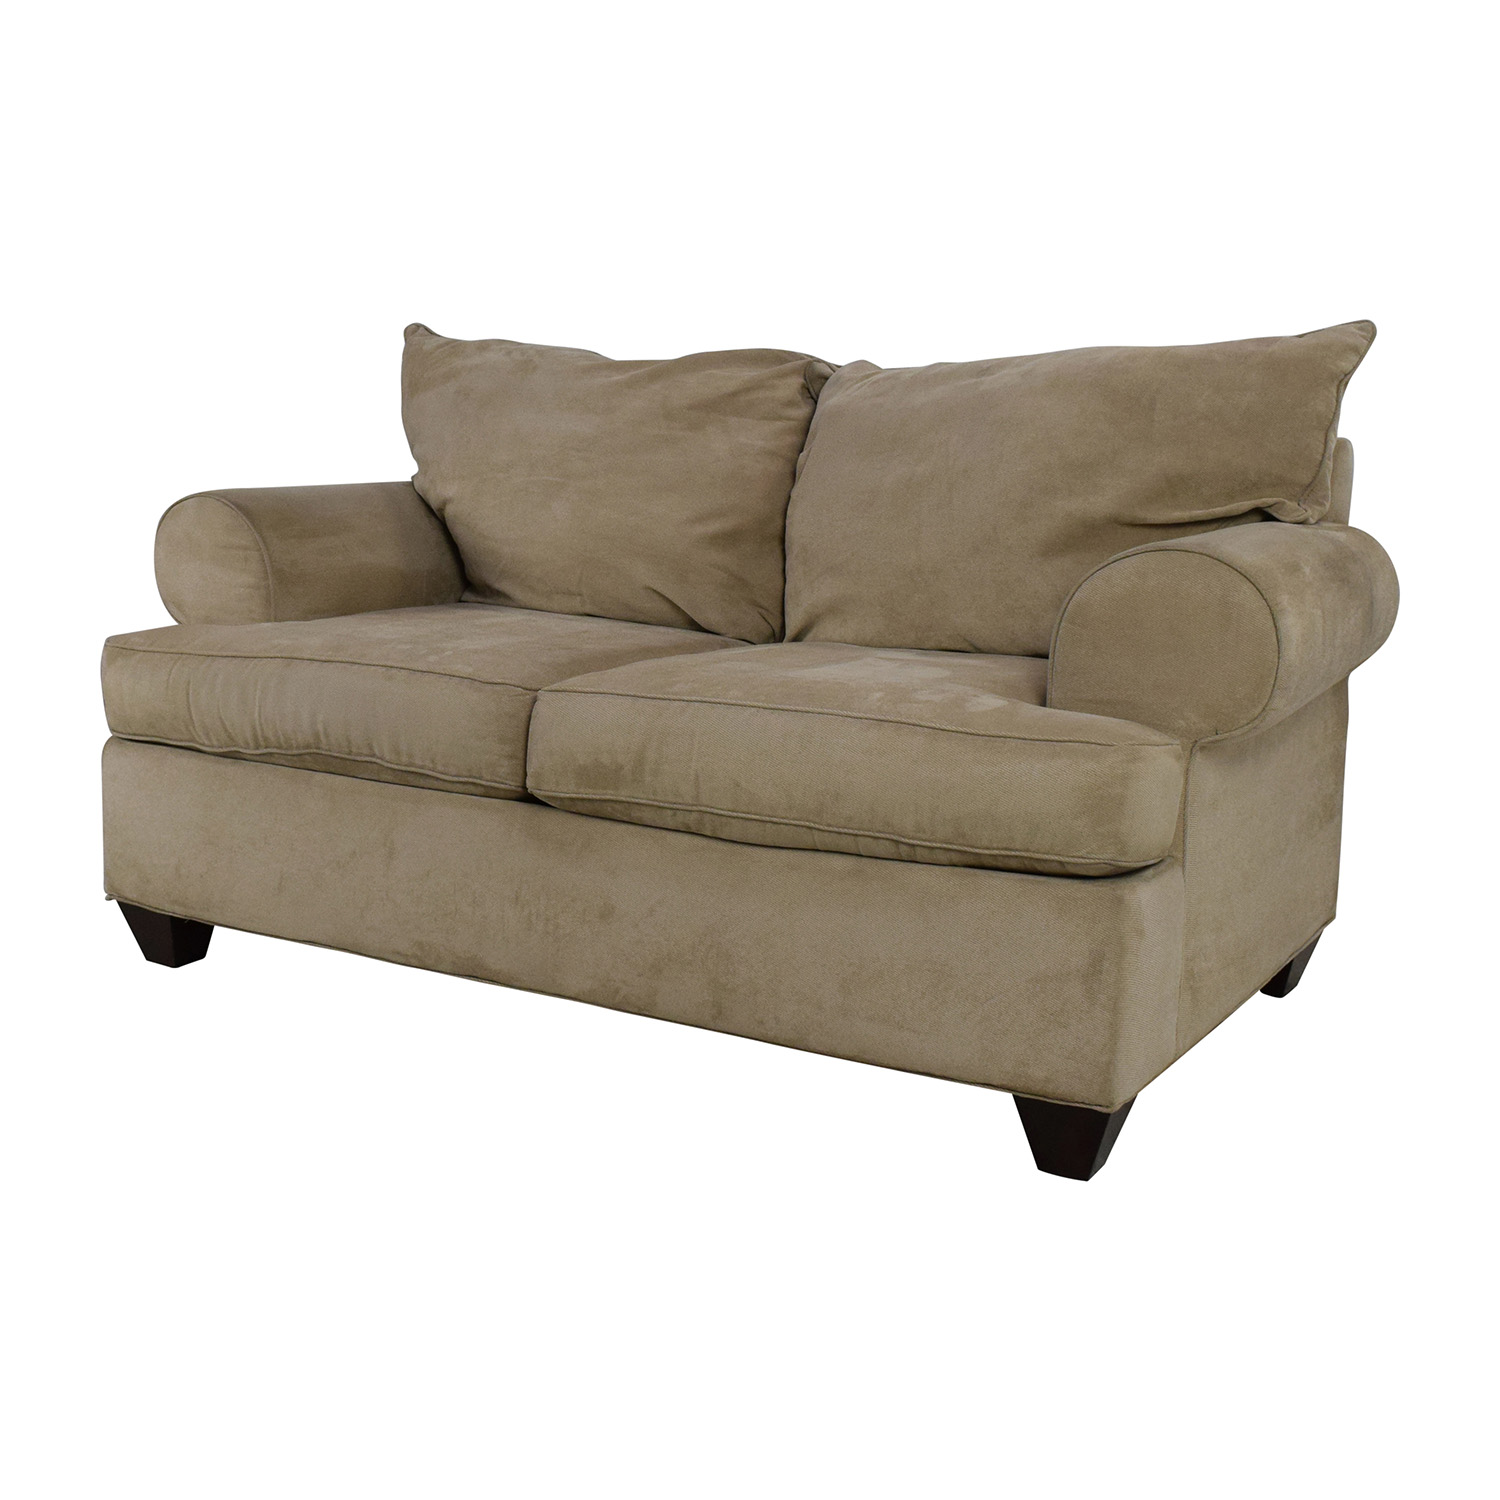 raymour and flanigan sectional sofas velvet sofa fabric products 59 off vegas